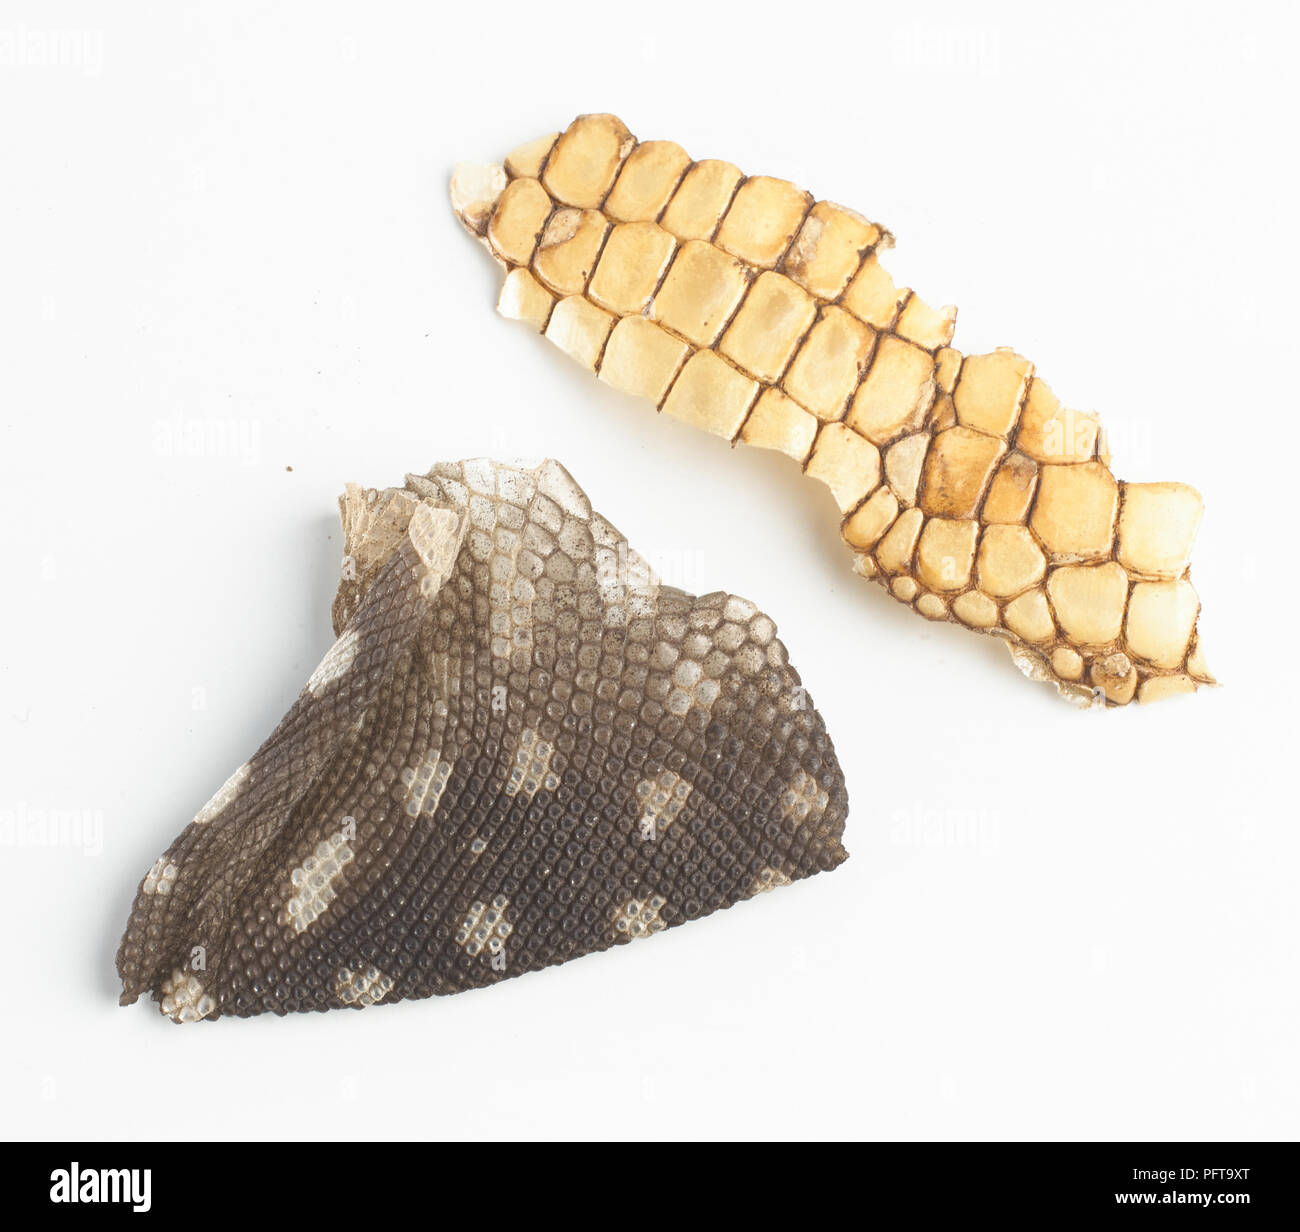 Shed skin detail, from black and white tegu (Tupinambis merianae), and from Caiman lizard (Dracaena guianensis). - Stock Image